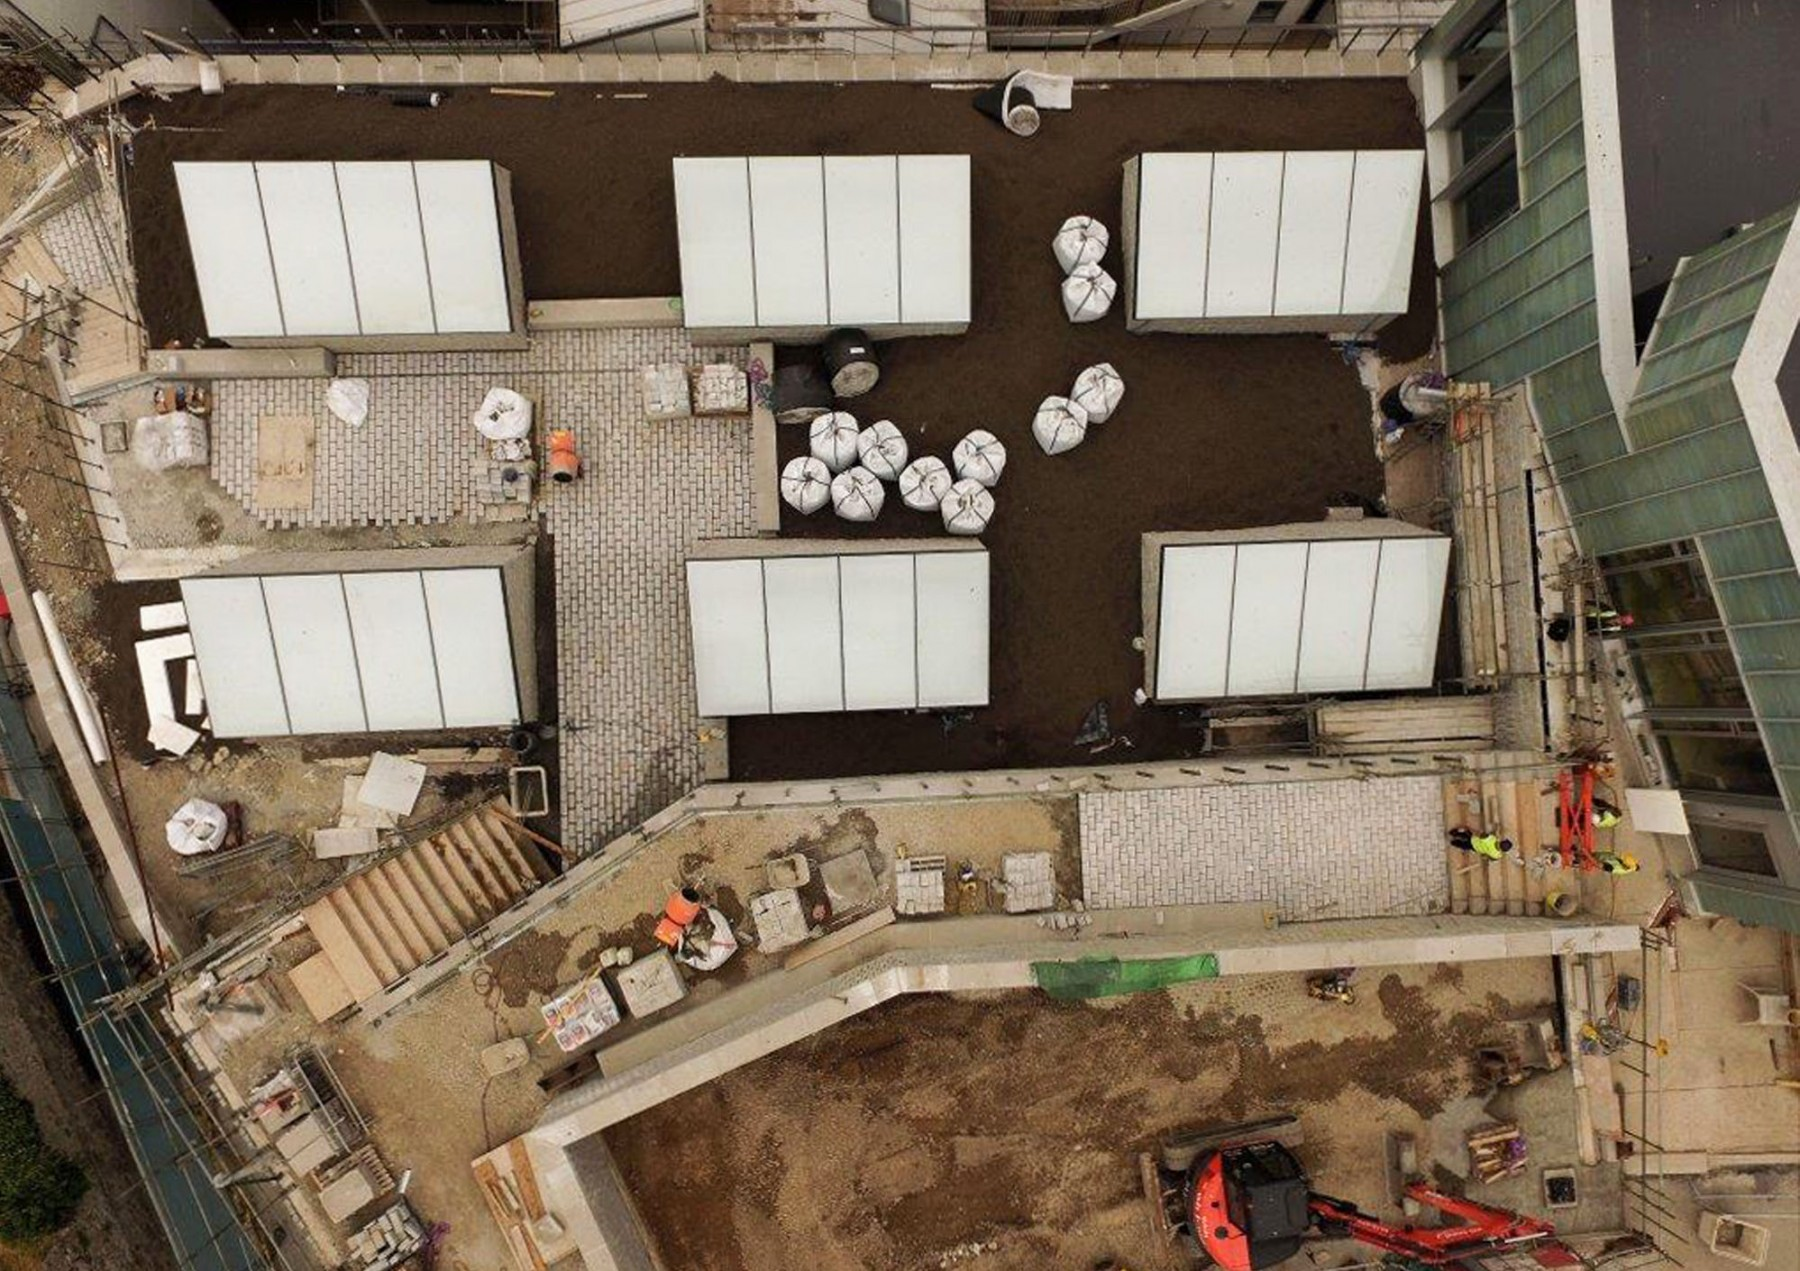 Tate-st-ive-cornwall-drone-construction-site-jamie-fobert-architects